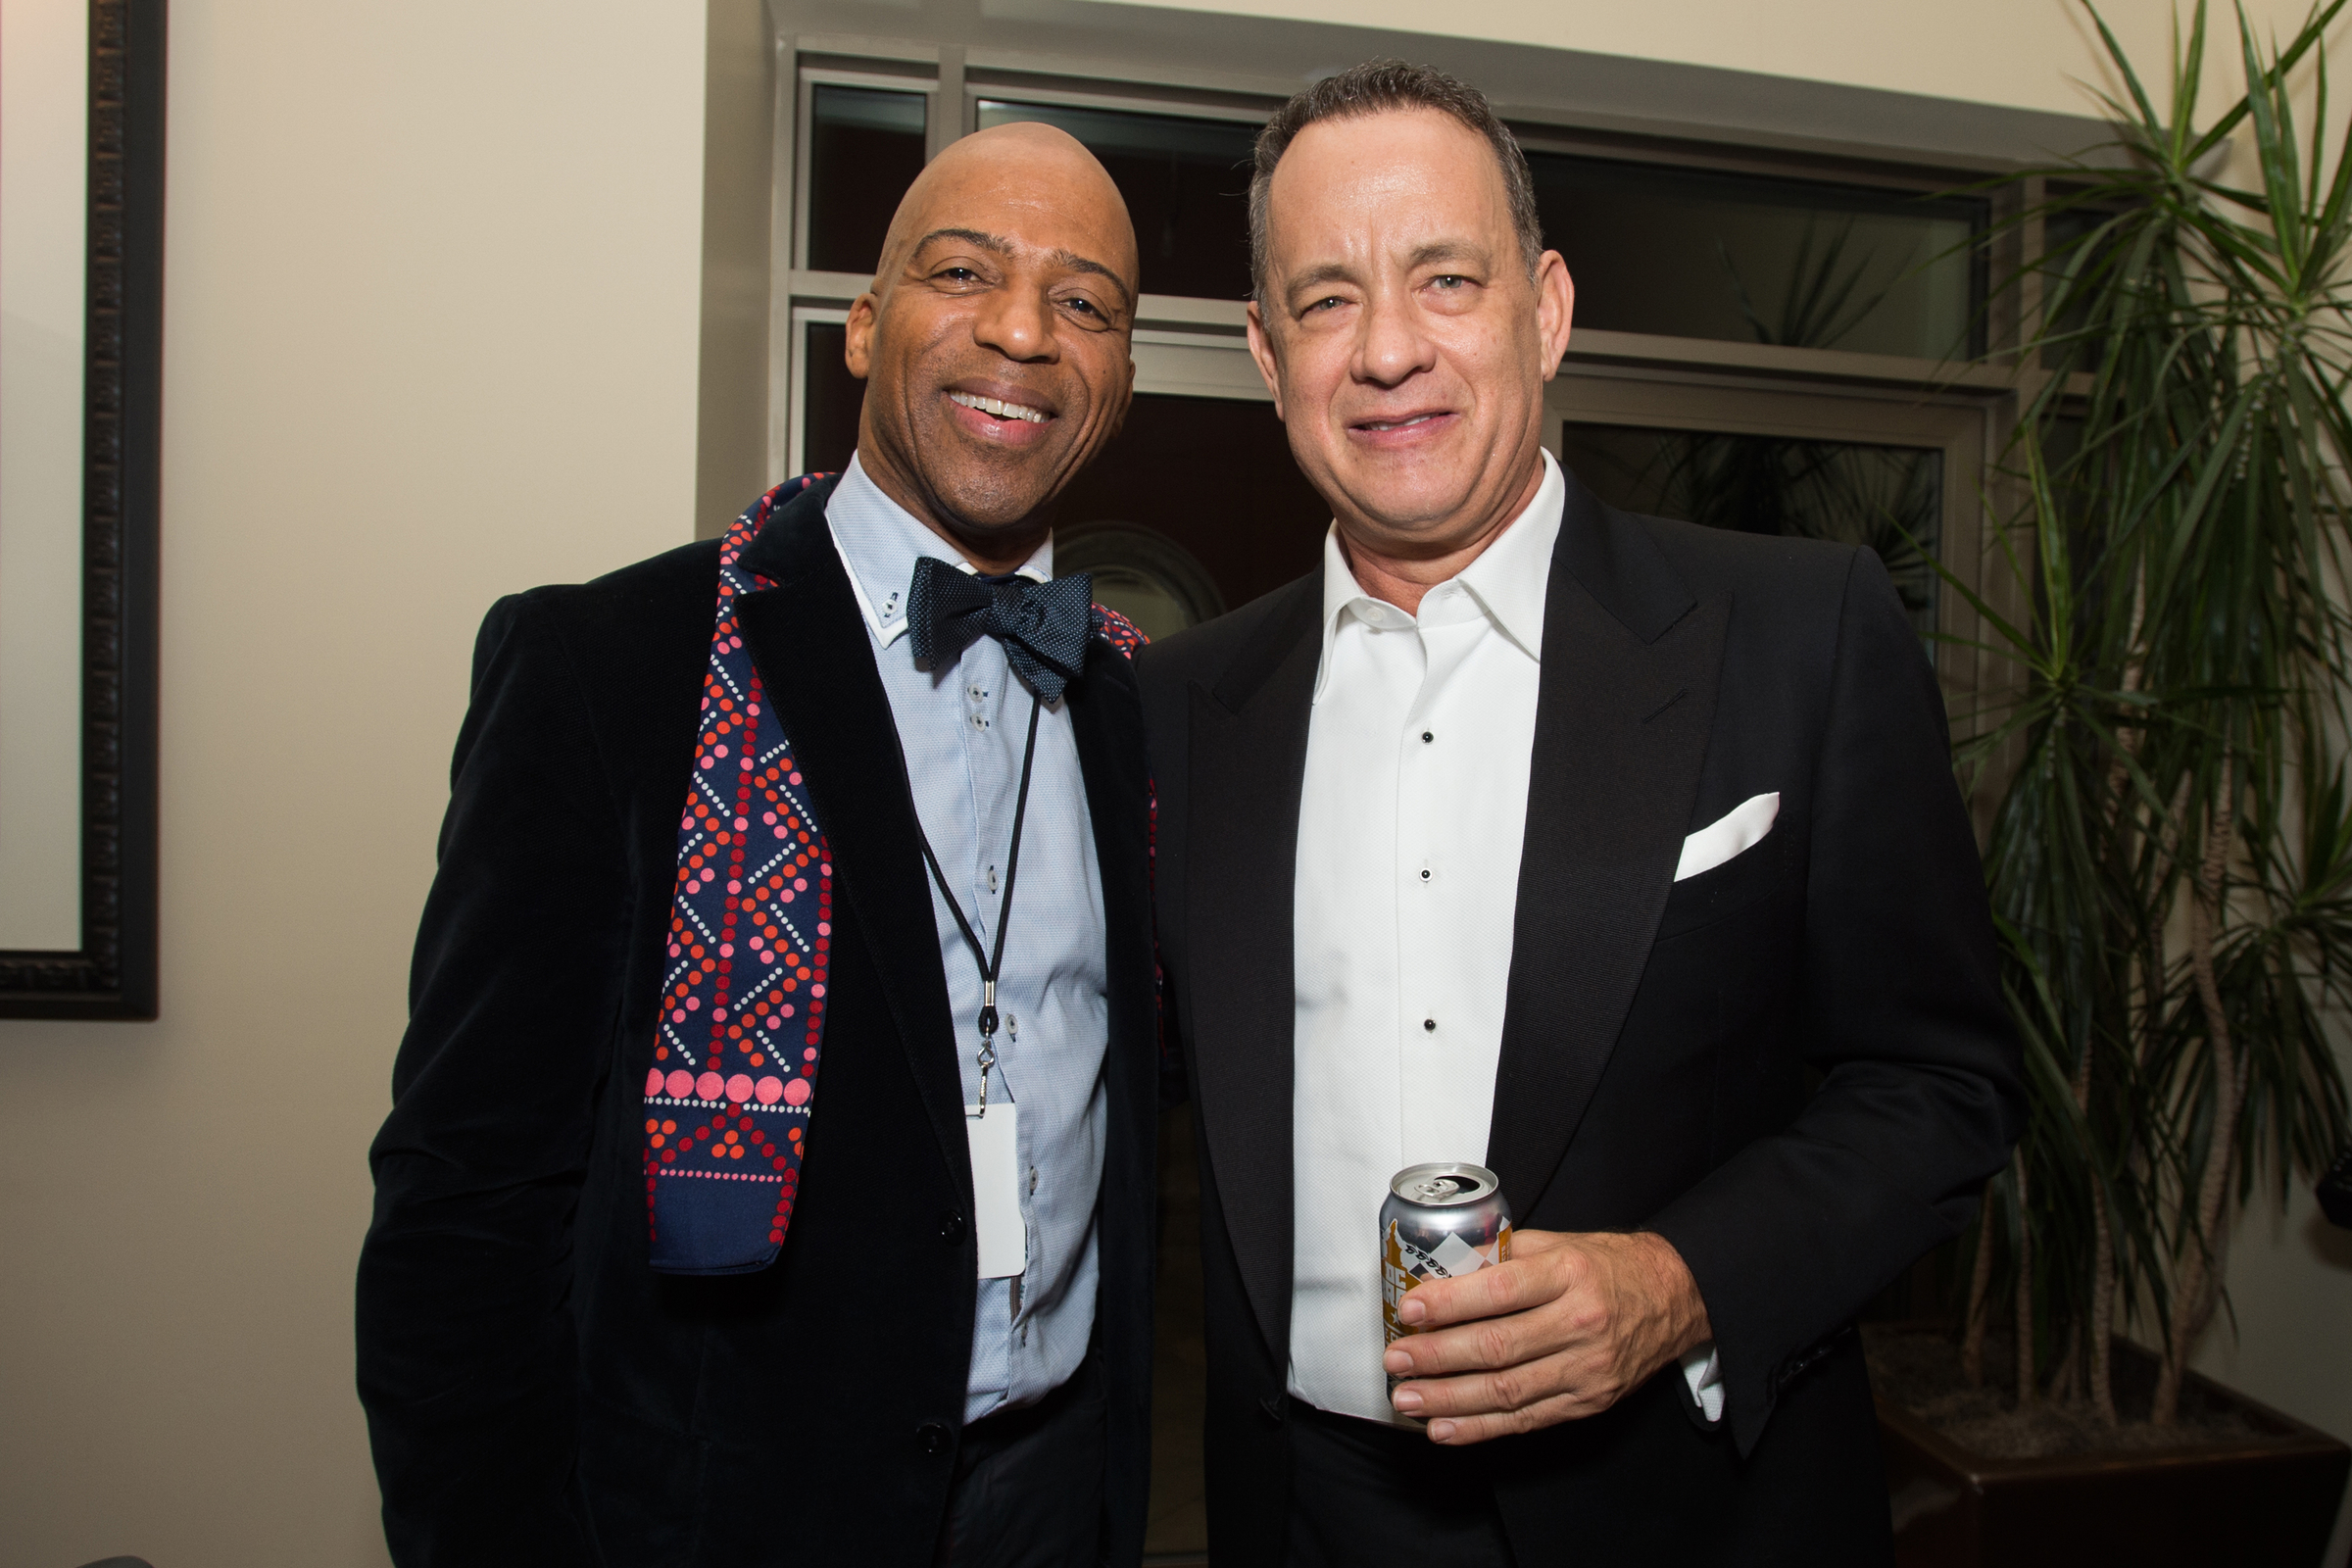 Keith Robinson and Tom Hanks